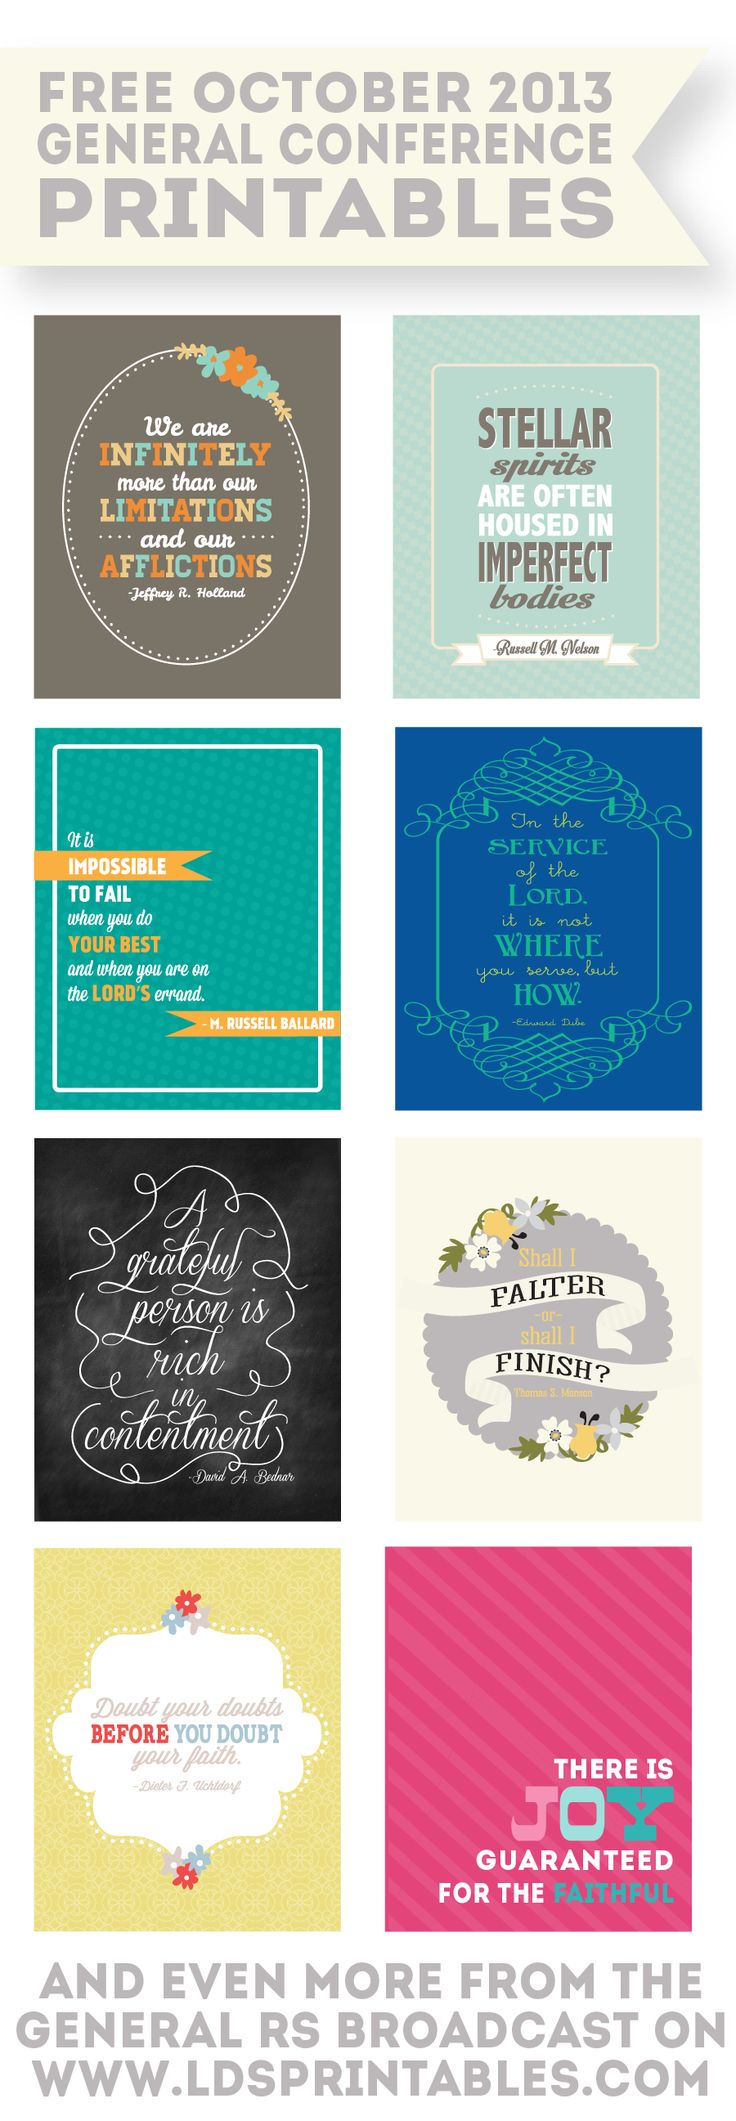 October 2013 LDS General Conference. Free 8x10 printables.